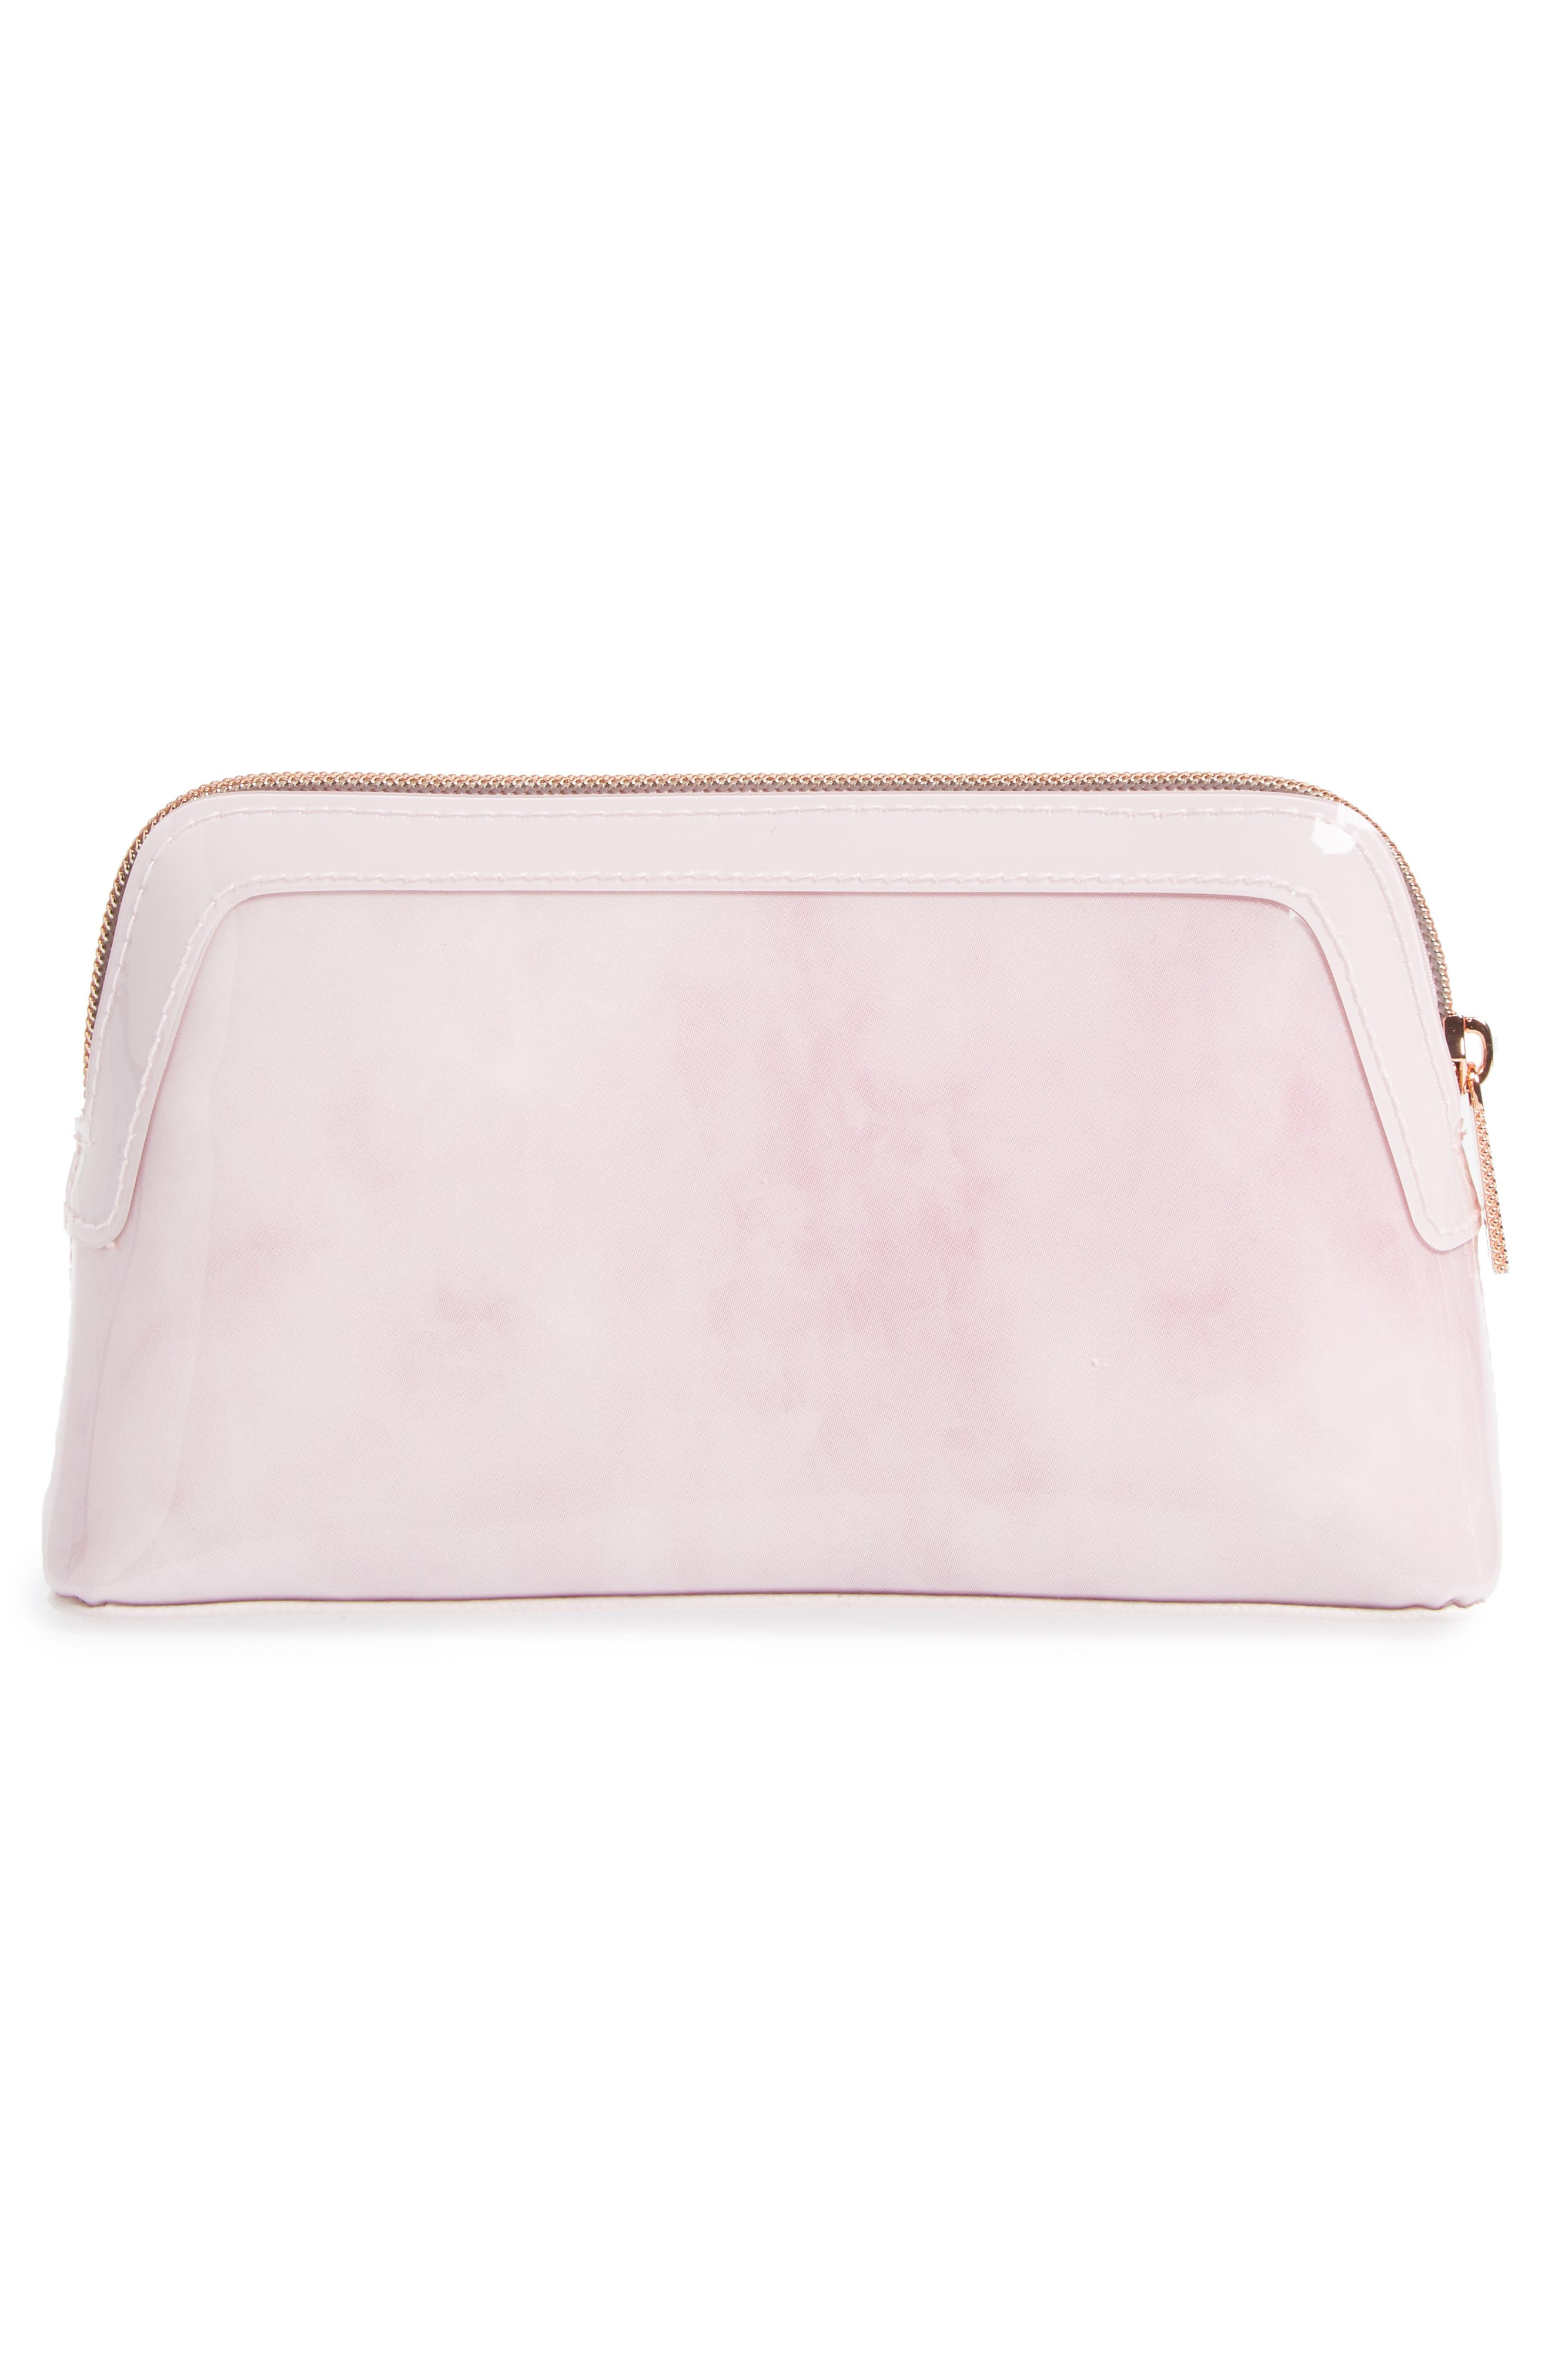 Zandra - Rose Quartz Cosmetics Bag,                             Alternate thumbnail 2, color,                             Nude Pink